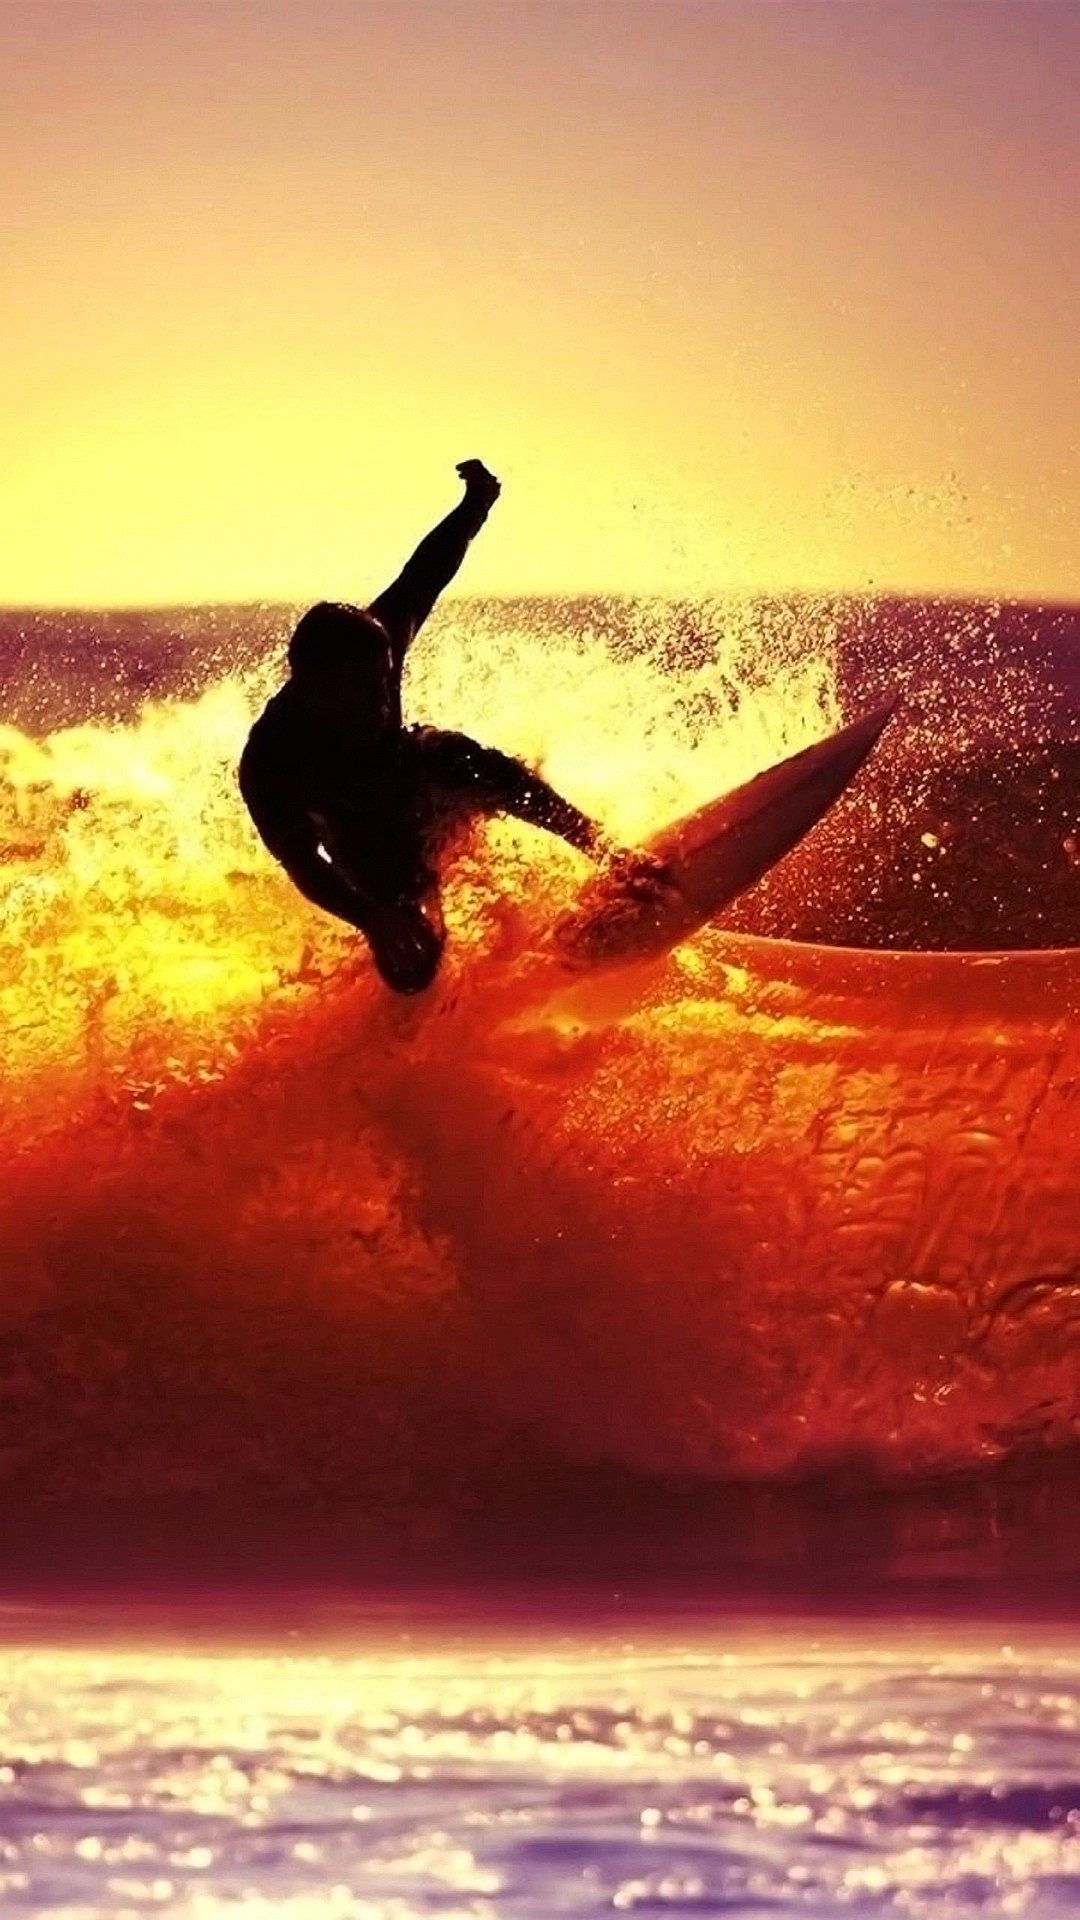 … wallpaper iphone 6 plus surfer 5 5 inches 1080 x 1920 iphone 6 …